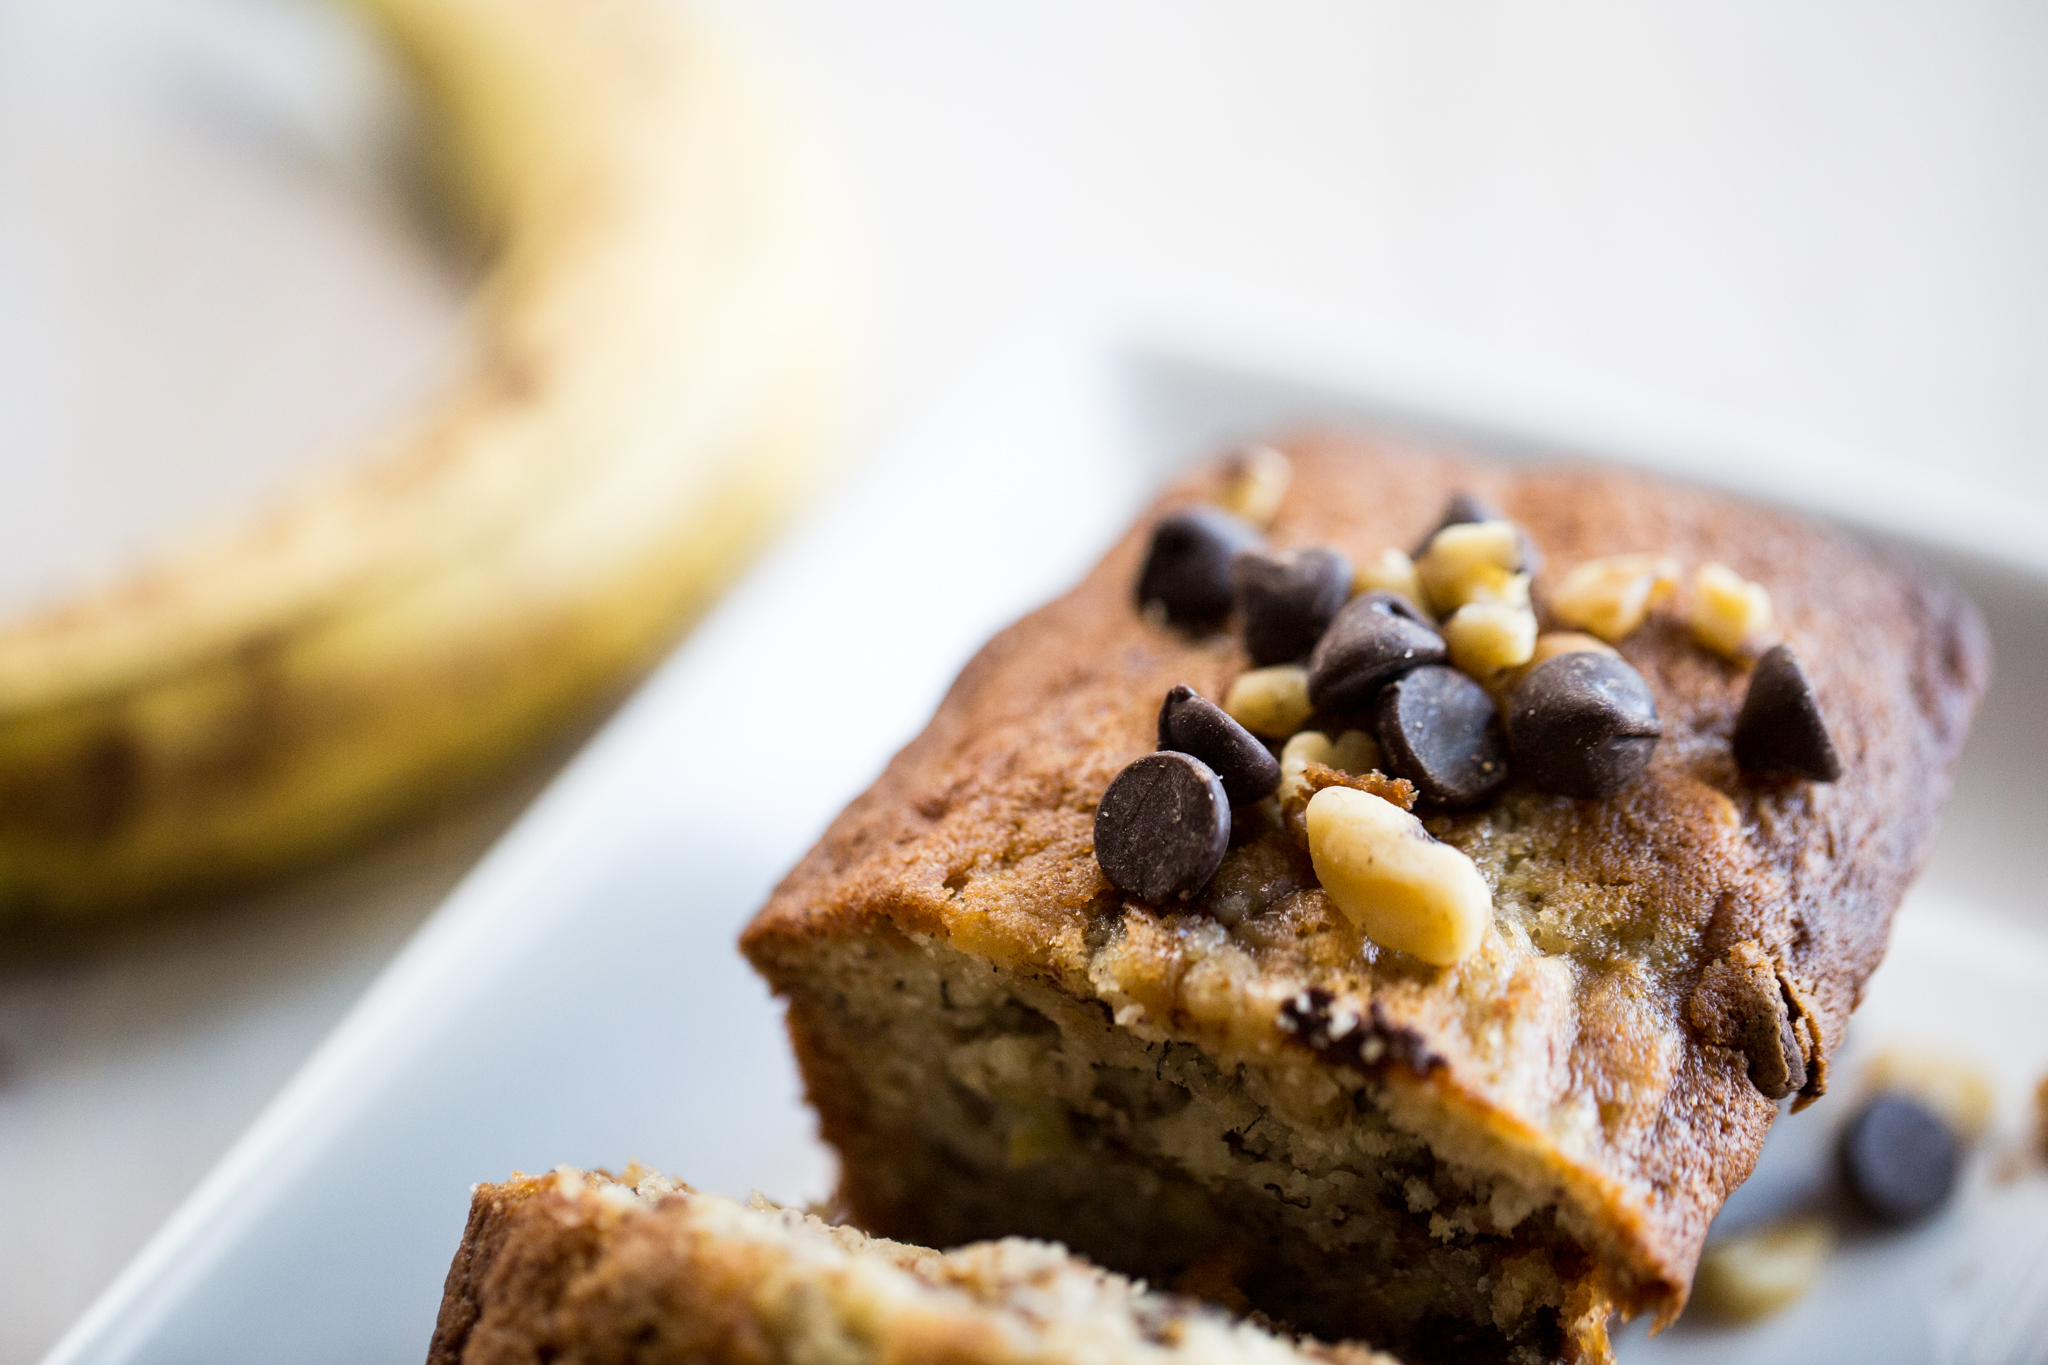 Banana Nut Chocolate Chip Bread Recipe, Banana Nut Bread, Banana Recipe, Quick Bread Recipe, Dessert Bread